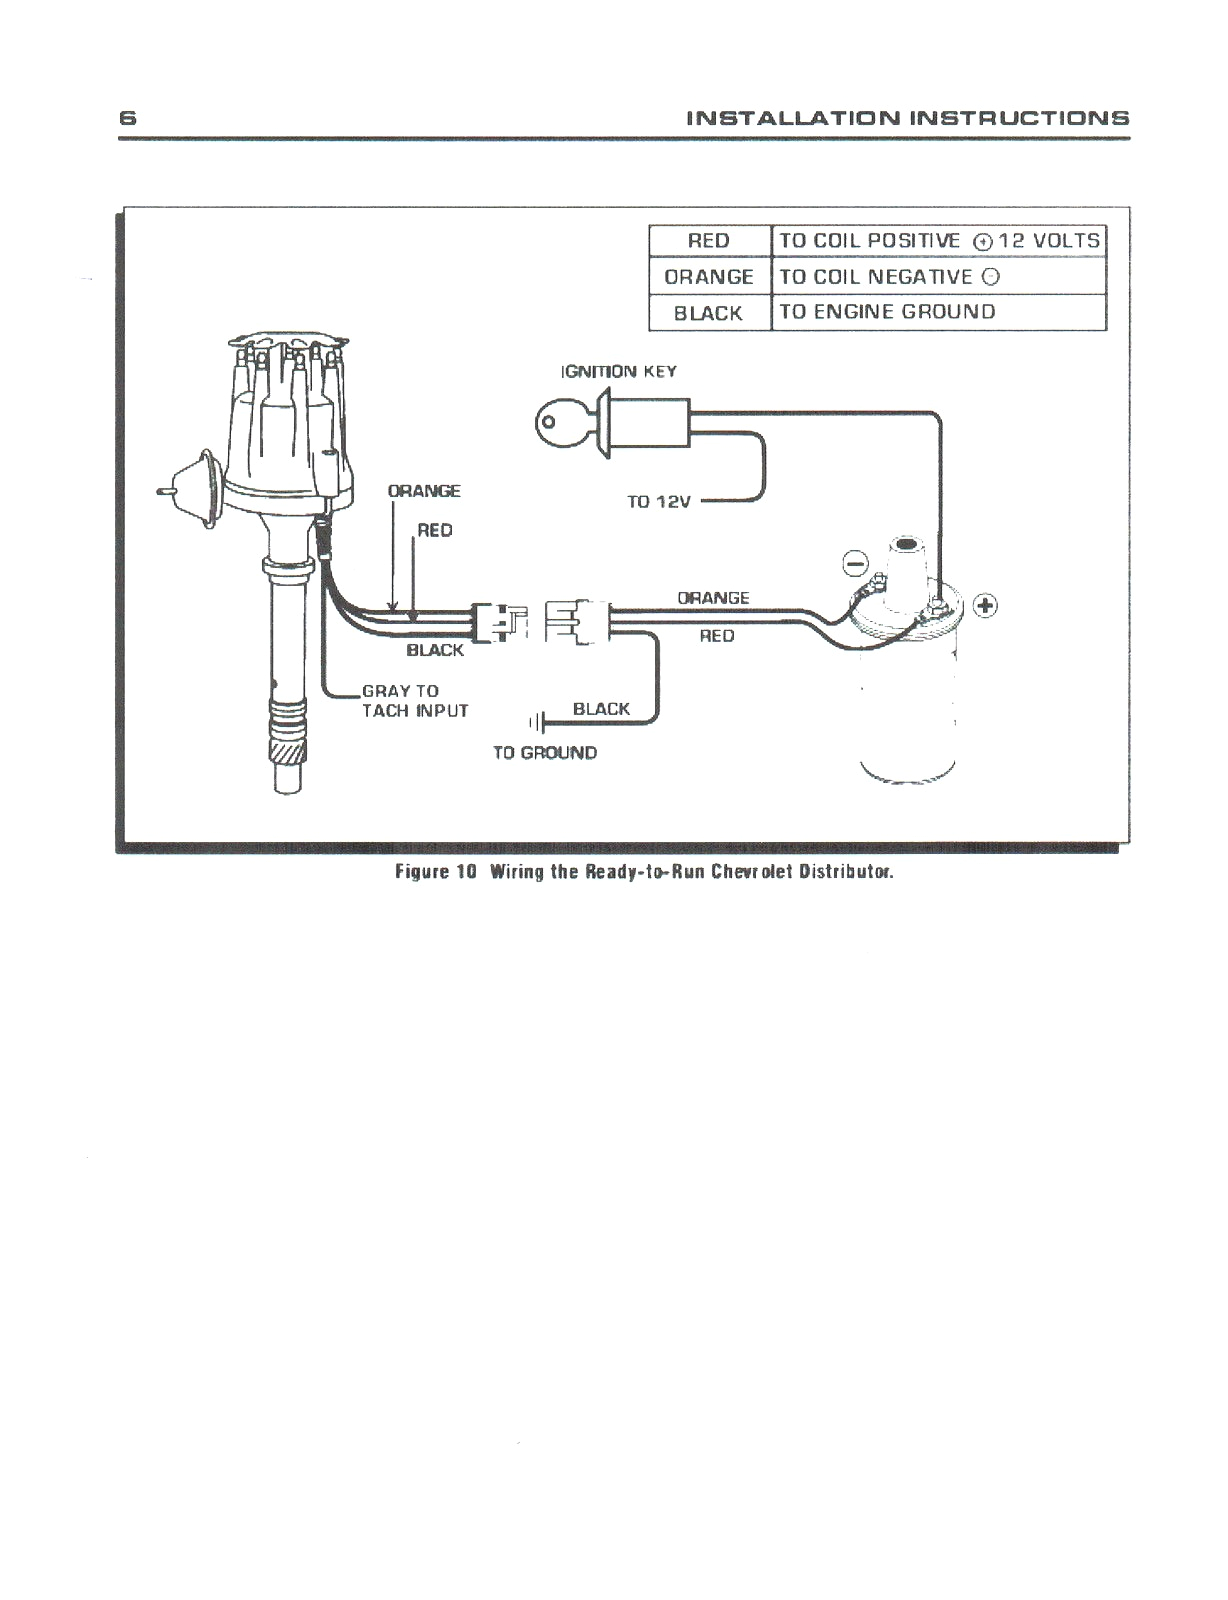 Wiring Diagram for Electronic Distributor Pro Comp Wiring Diagram Wiring Diagram Val